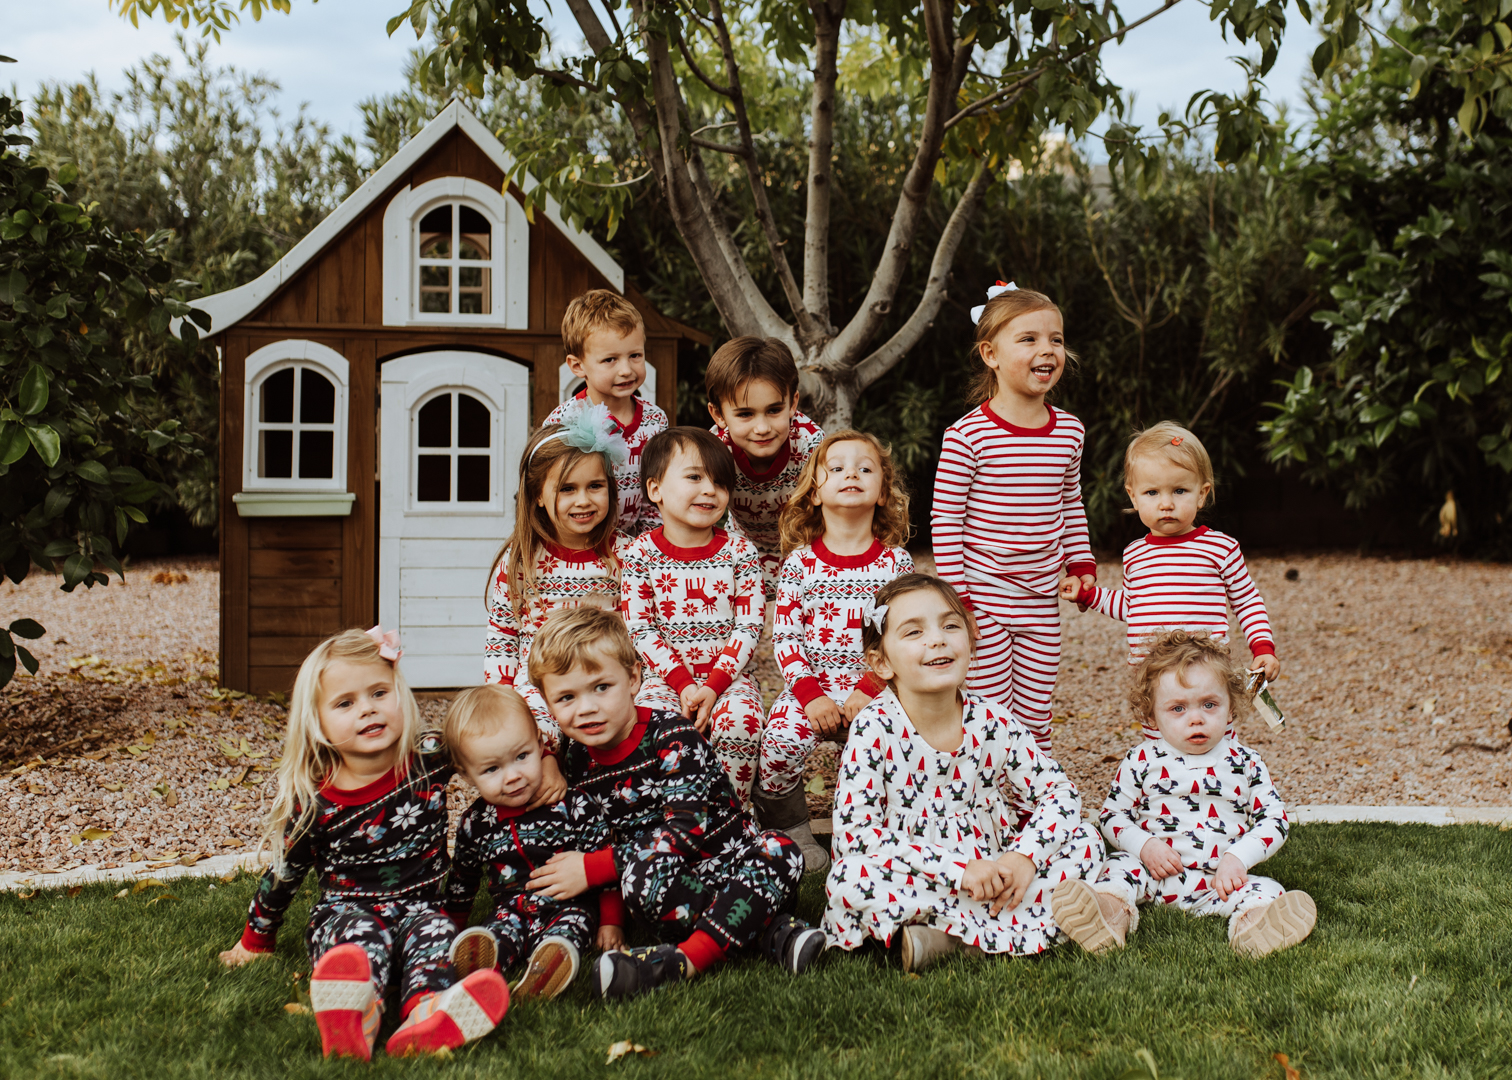 some of my besties kids, all in matching christmas pajamas for our gingerbread decorating party! | thelovedesignedlife.com #matchingjammies #christmasjammies #hannajams #gingerbreadhouse #holidayplaydate